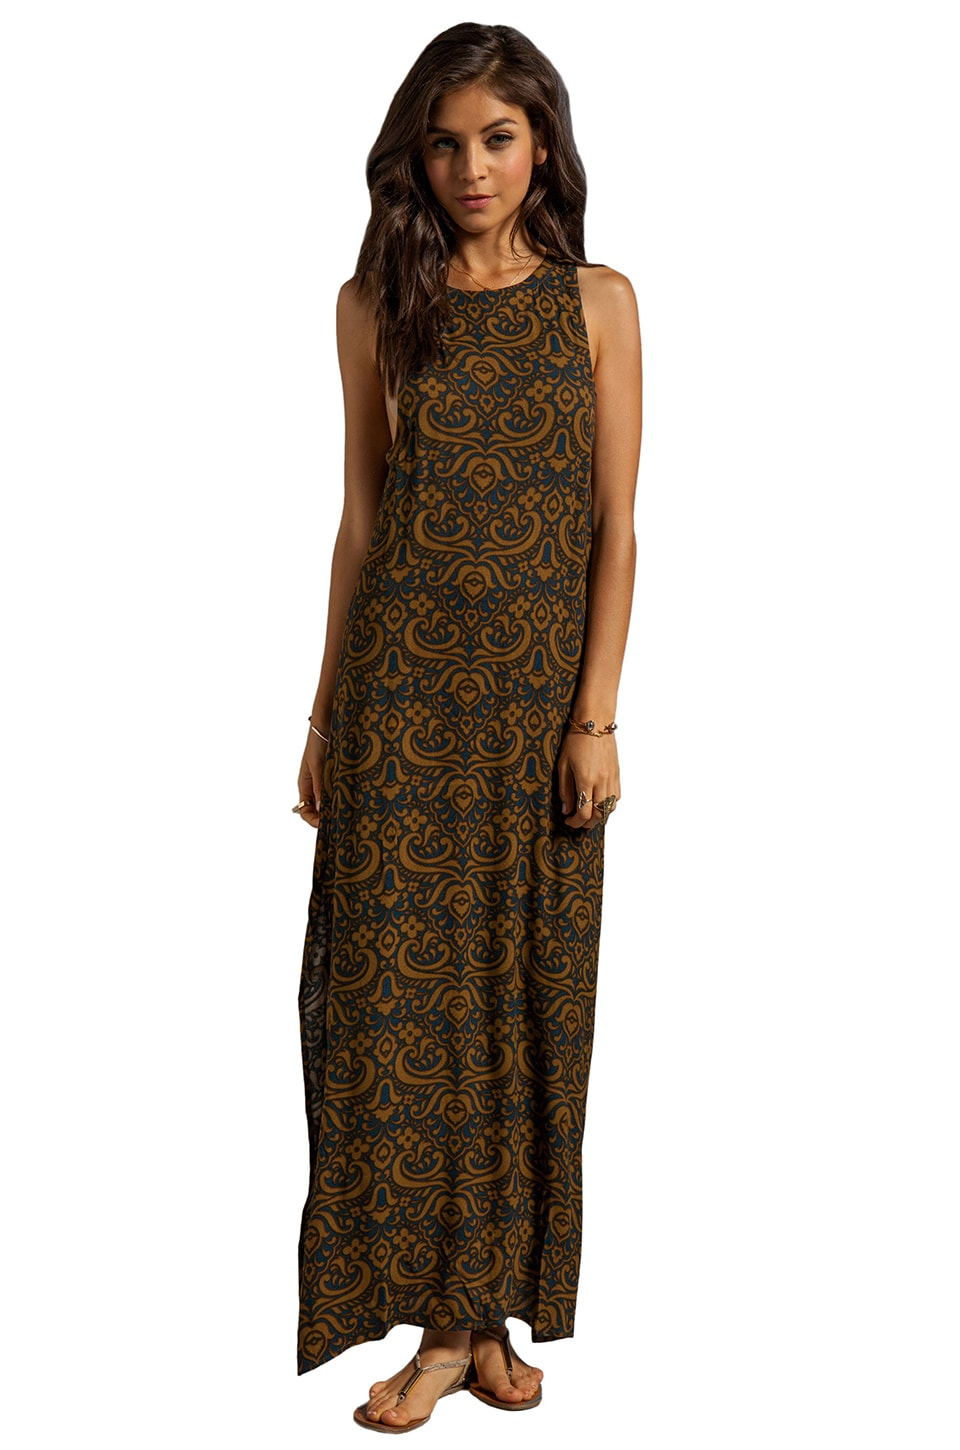 Chaser Brocade Maxi Dress in Brocade Georgette